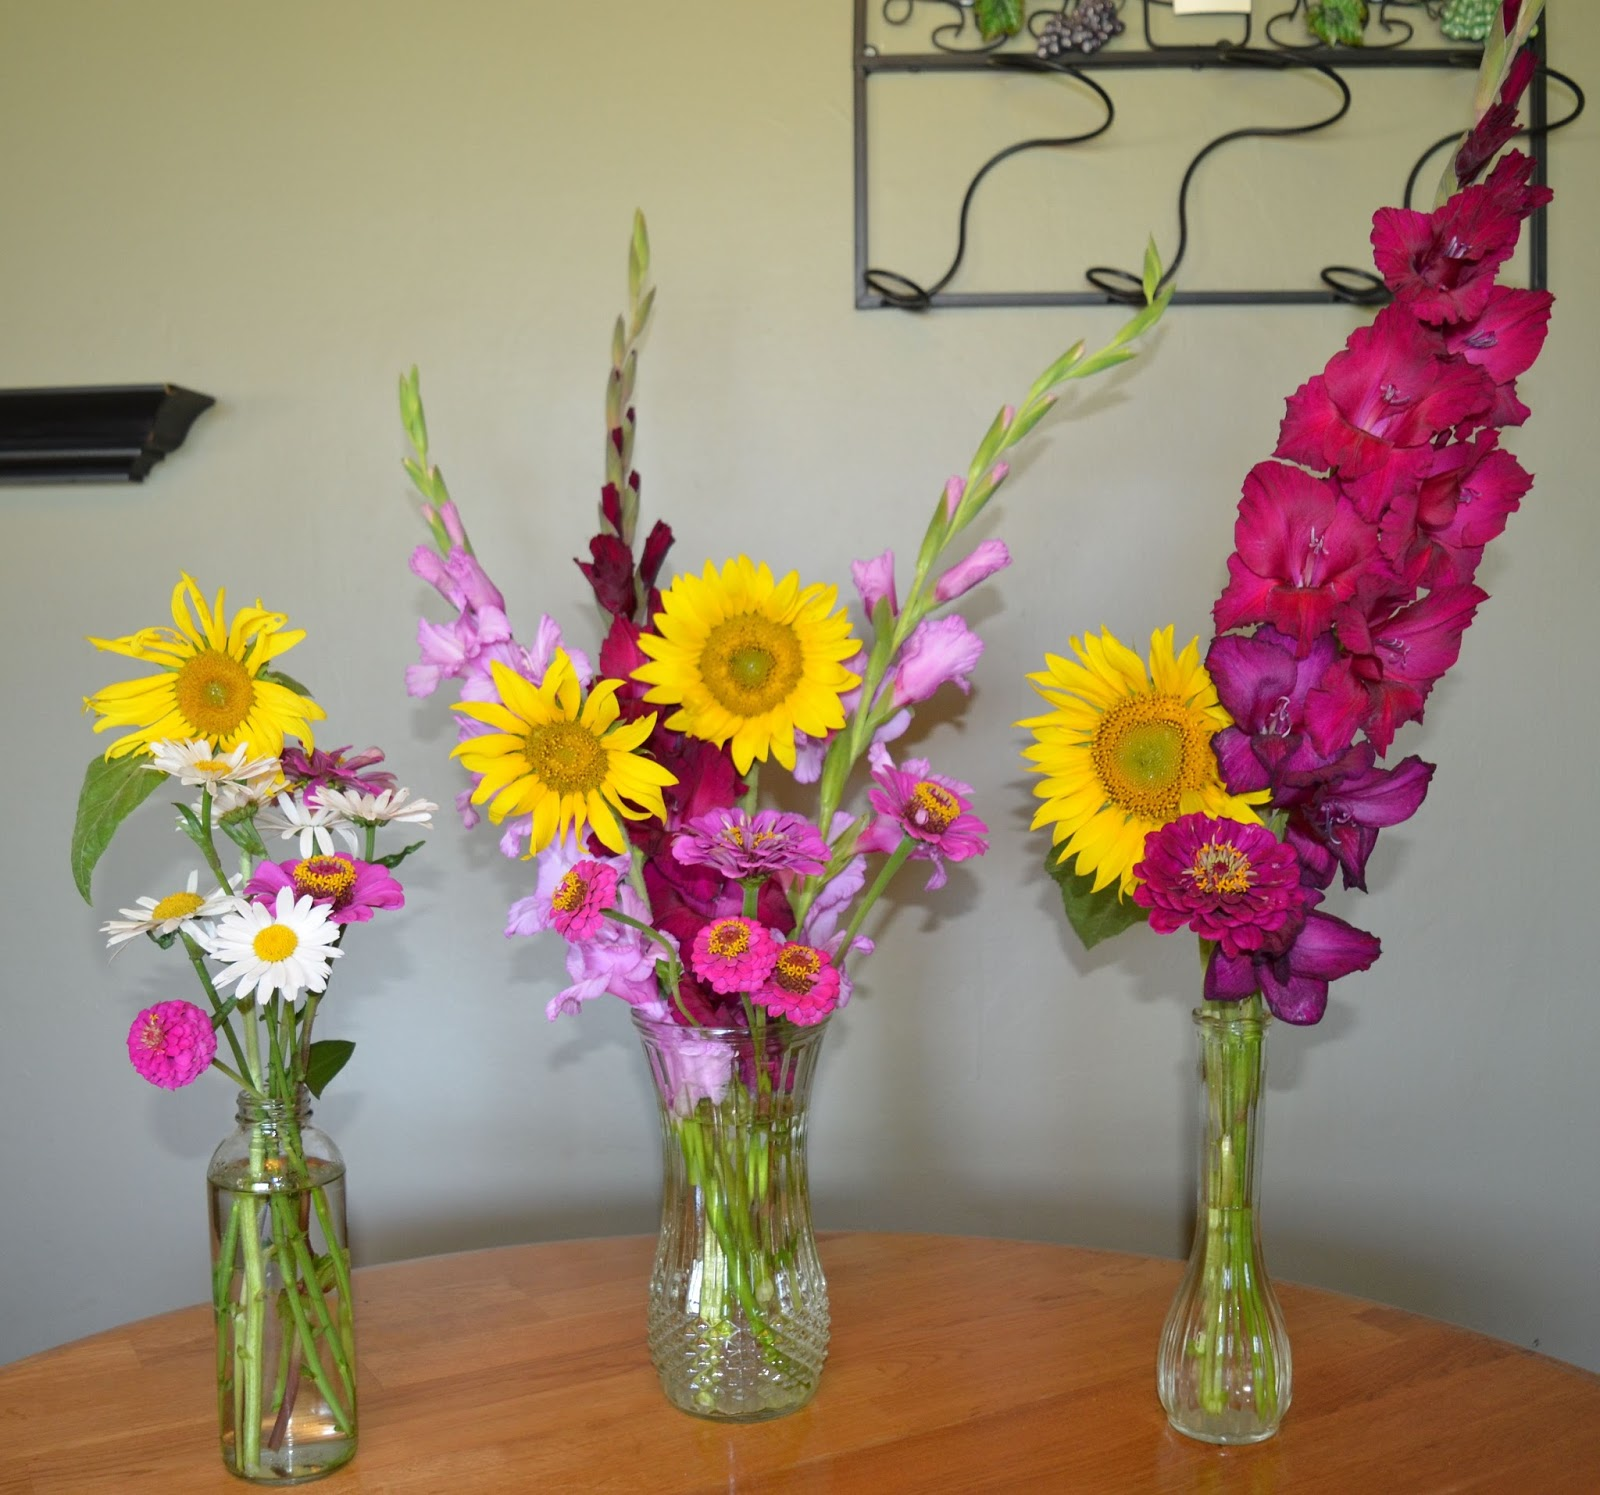 Rebeccas texas garden in a vase on monday all good things come the first vase is the largest of them all and is the one i used to brighten up my main living space at home this week the big bouquet was a nice reviewsmspy